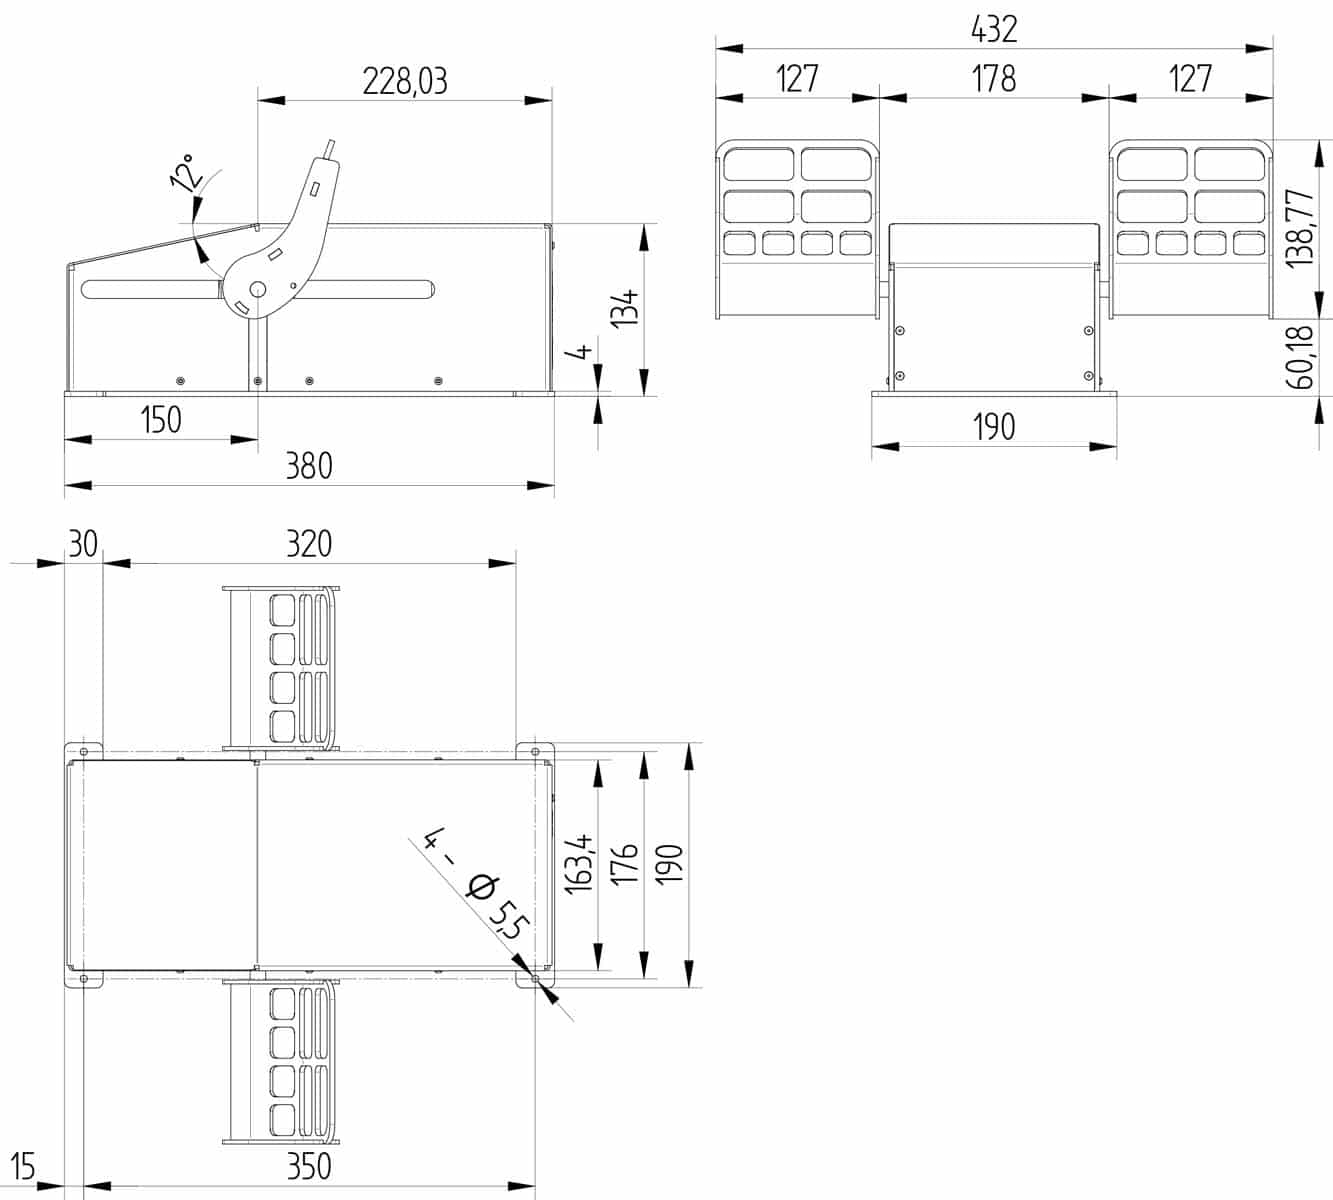 hight resolution of ch pro pedals usb wiring diagram ac wiring 240v dryer